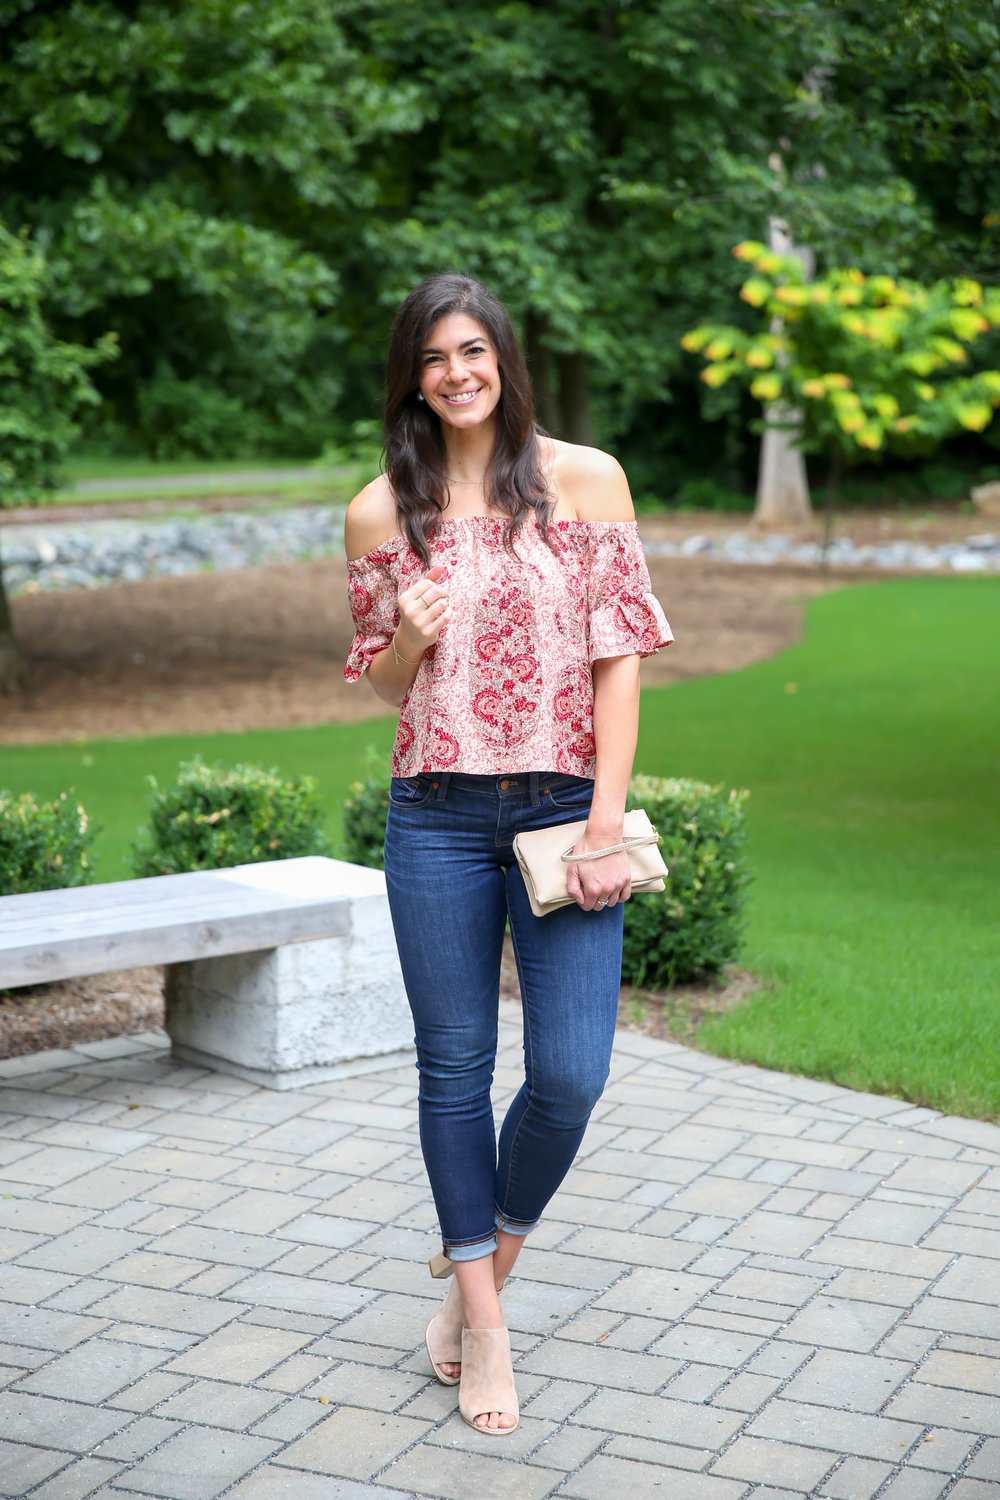 dark-skinny-jeans-silk-paisley-off-the-shoulder-top-lauren-schwaiger-style-inspo.jpg